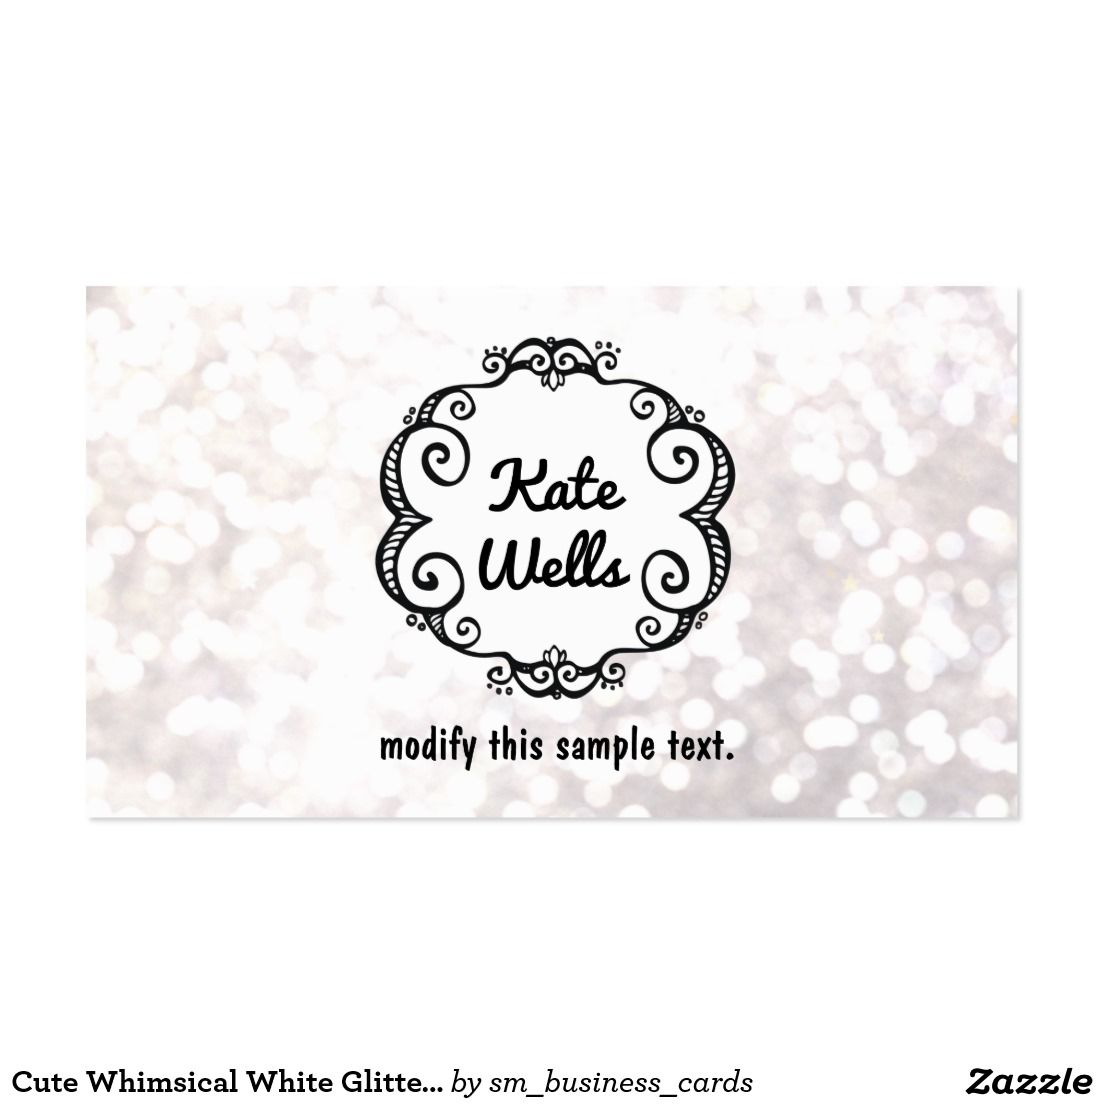 Cute whimsical white glitter bokeh business card great for fashion cute whimsical white glitter bokeh business card great for fashion boutiques makeup artists reheart Choice Image